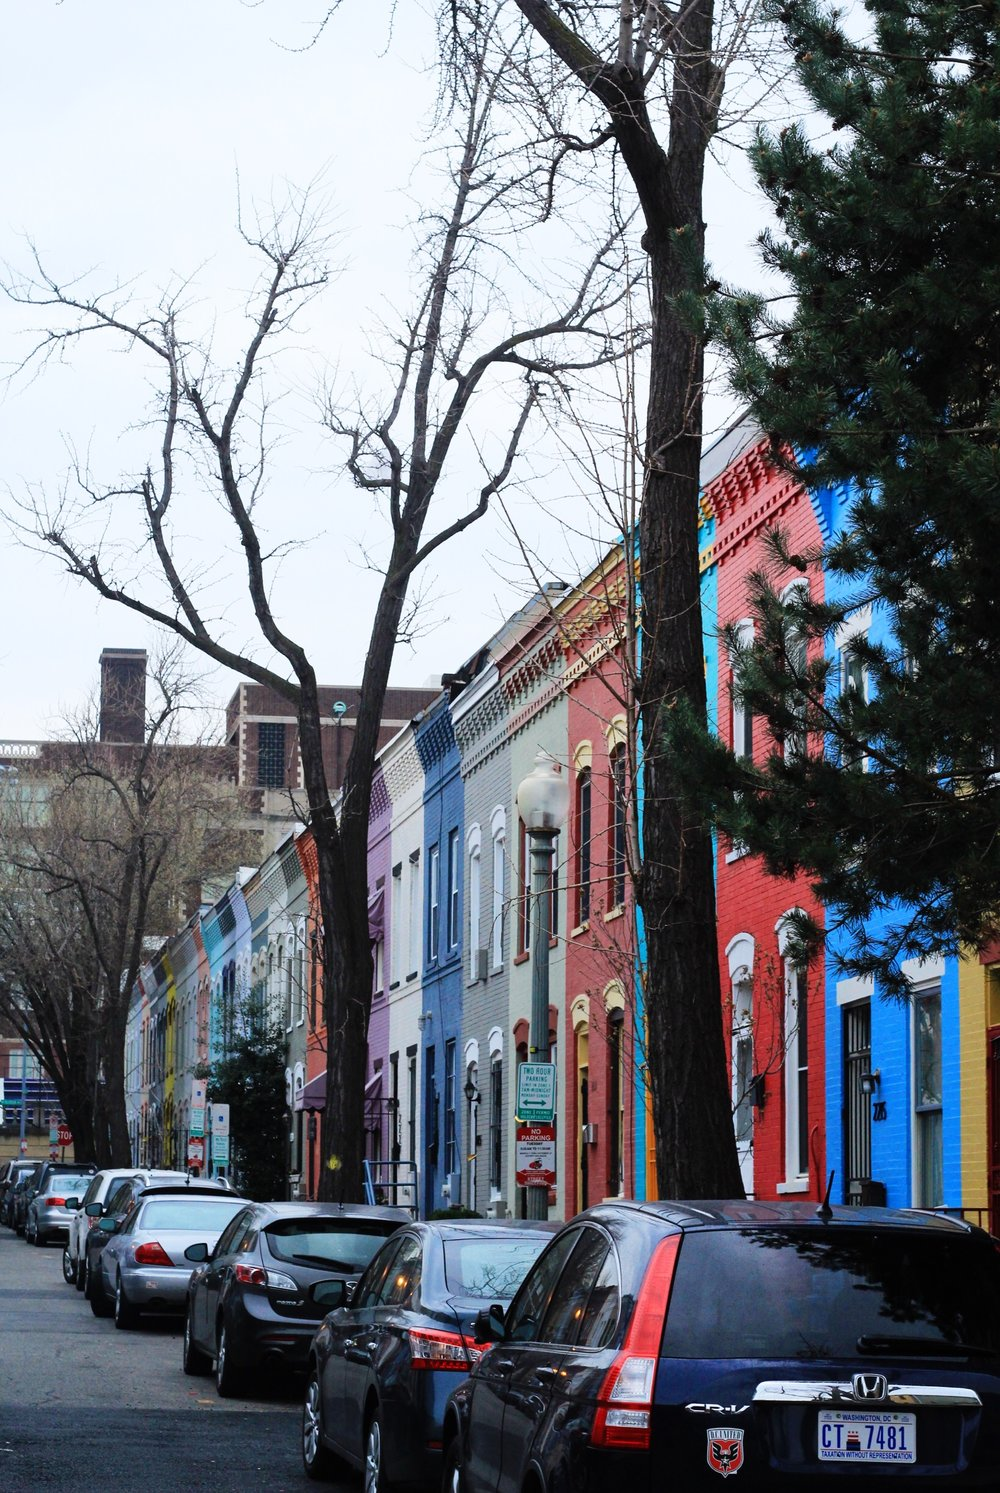 DC_UStreet_Neighborhood.jpg